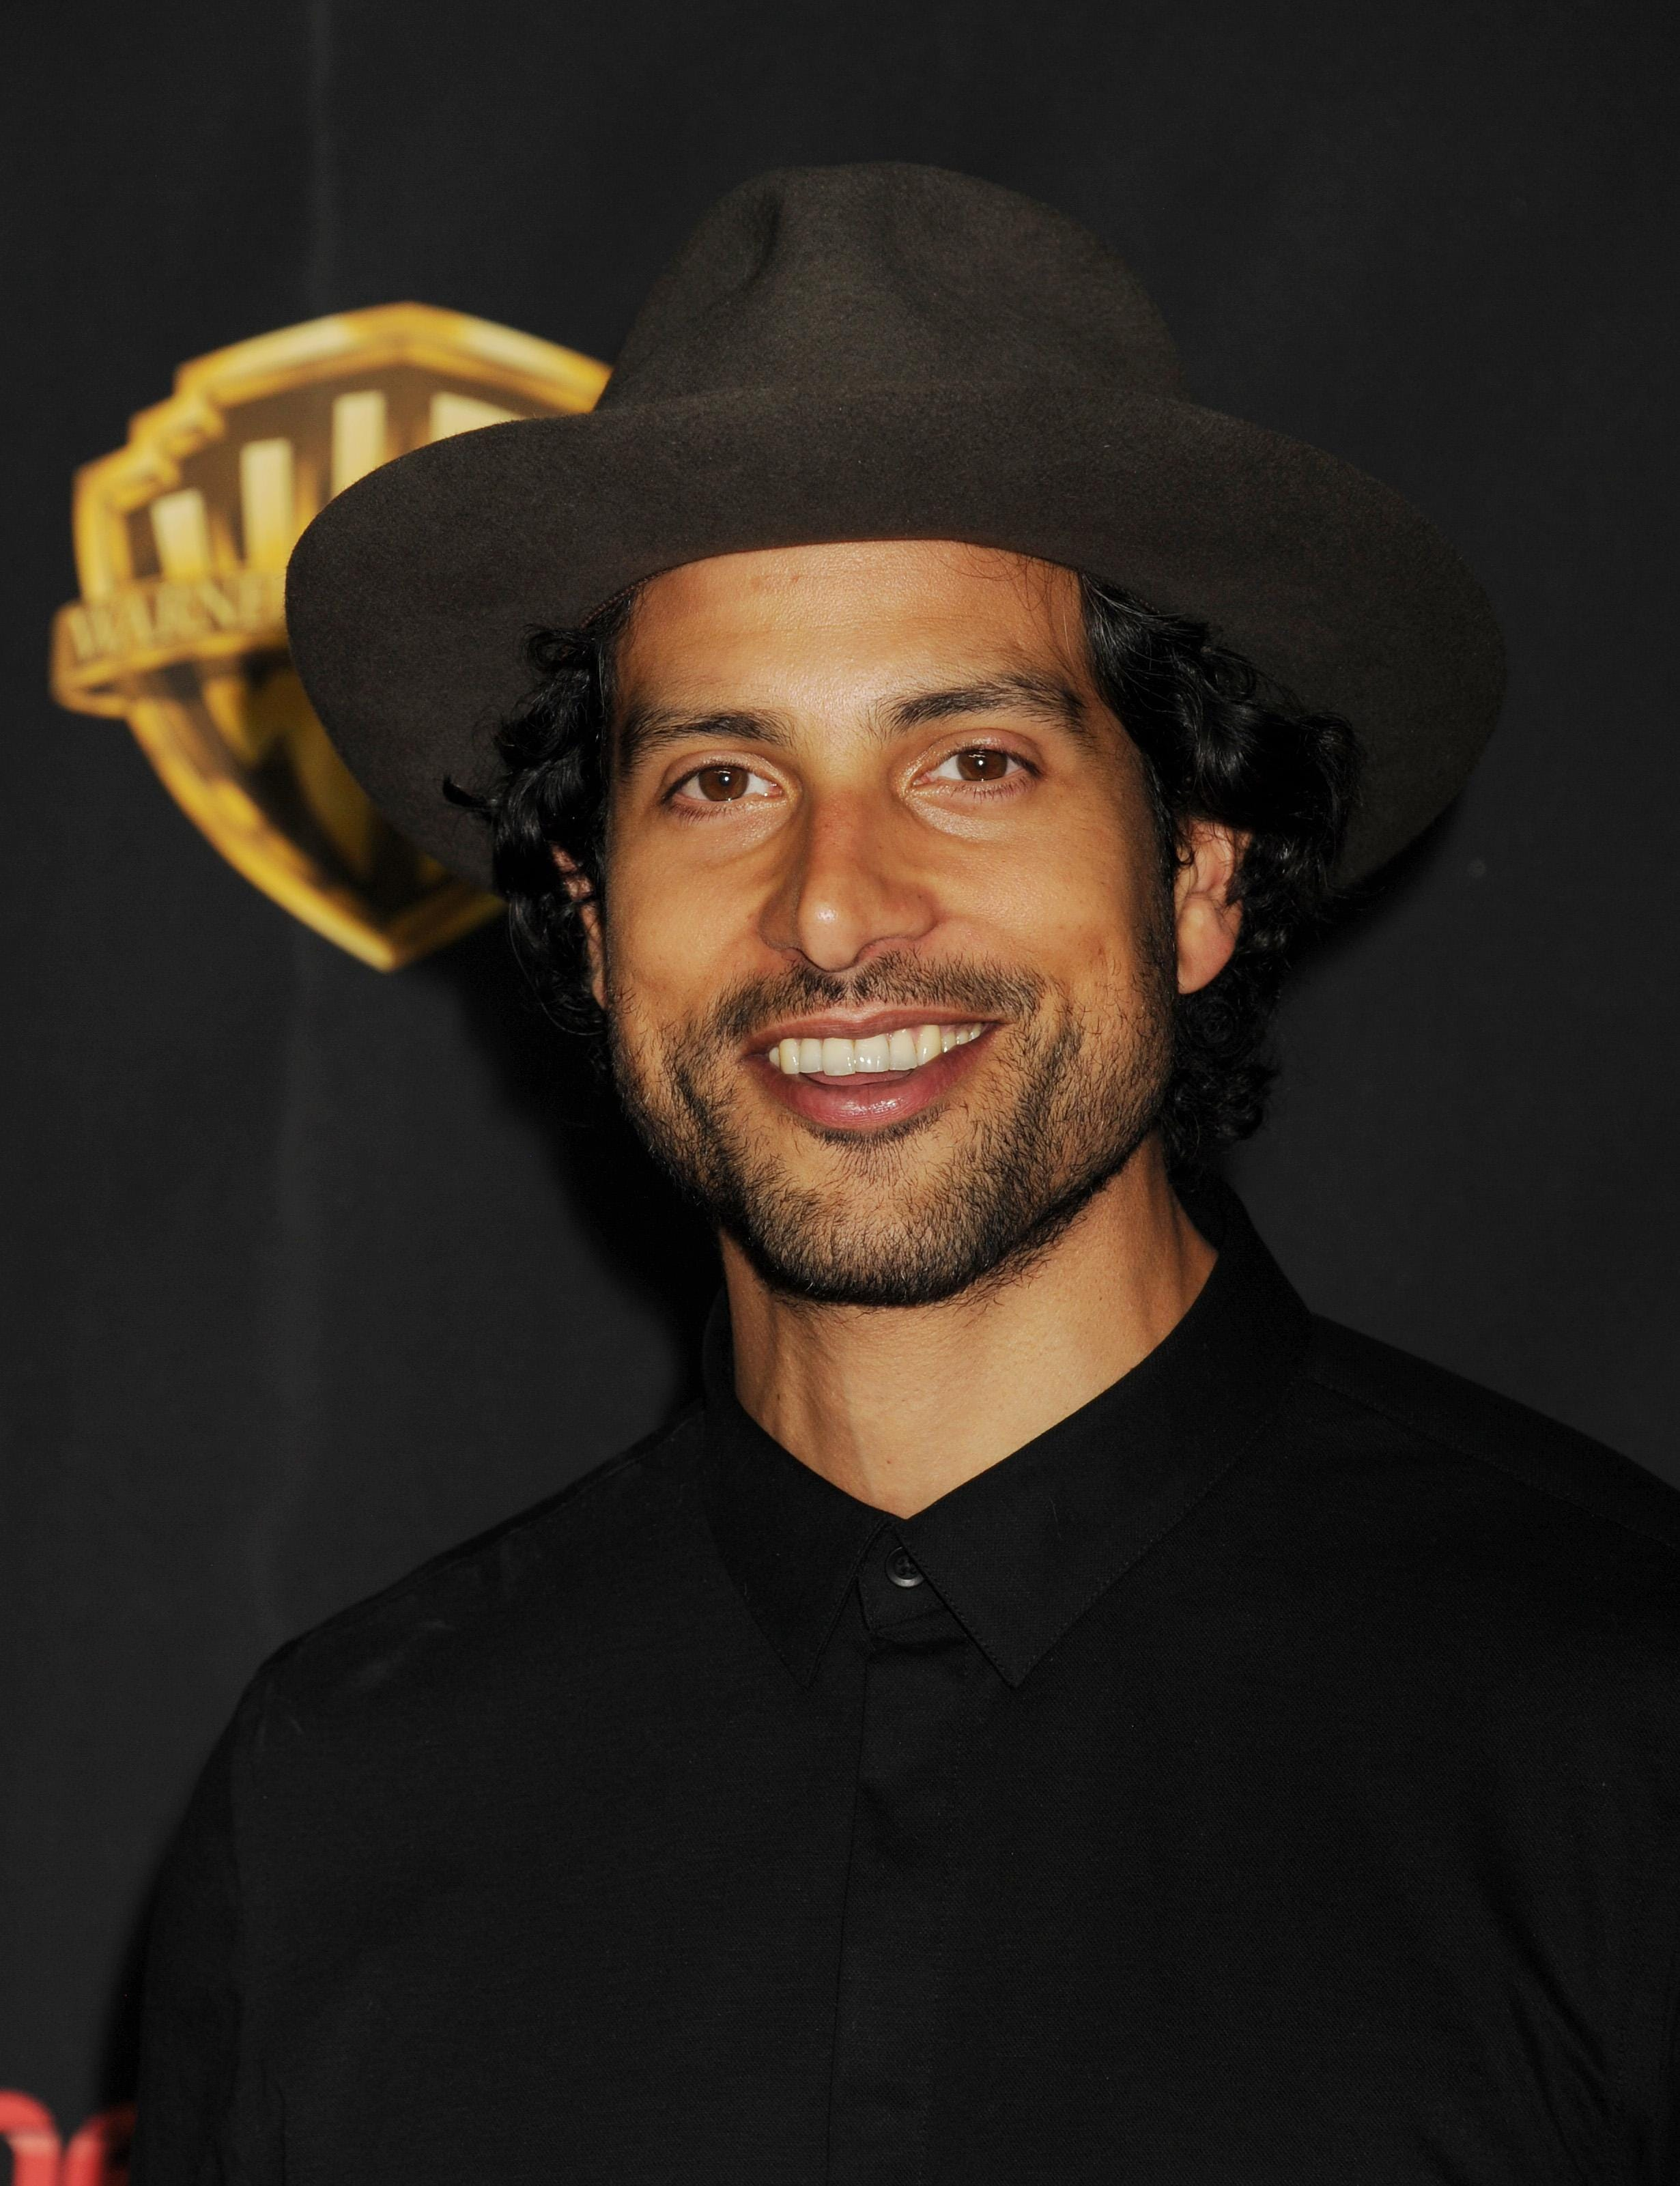 hvem er dating adam rodriguez csi